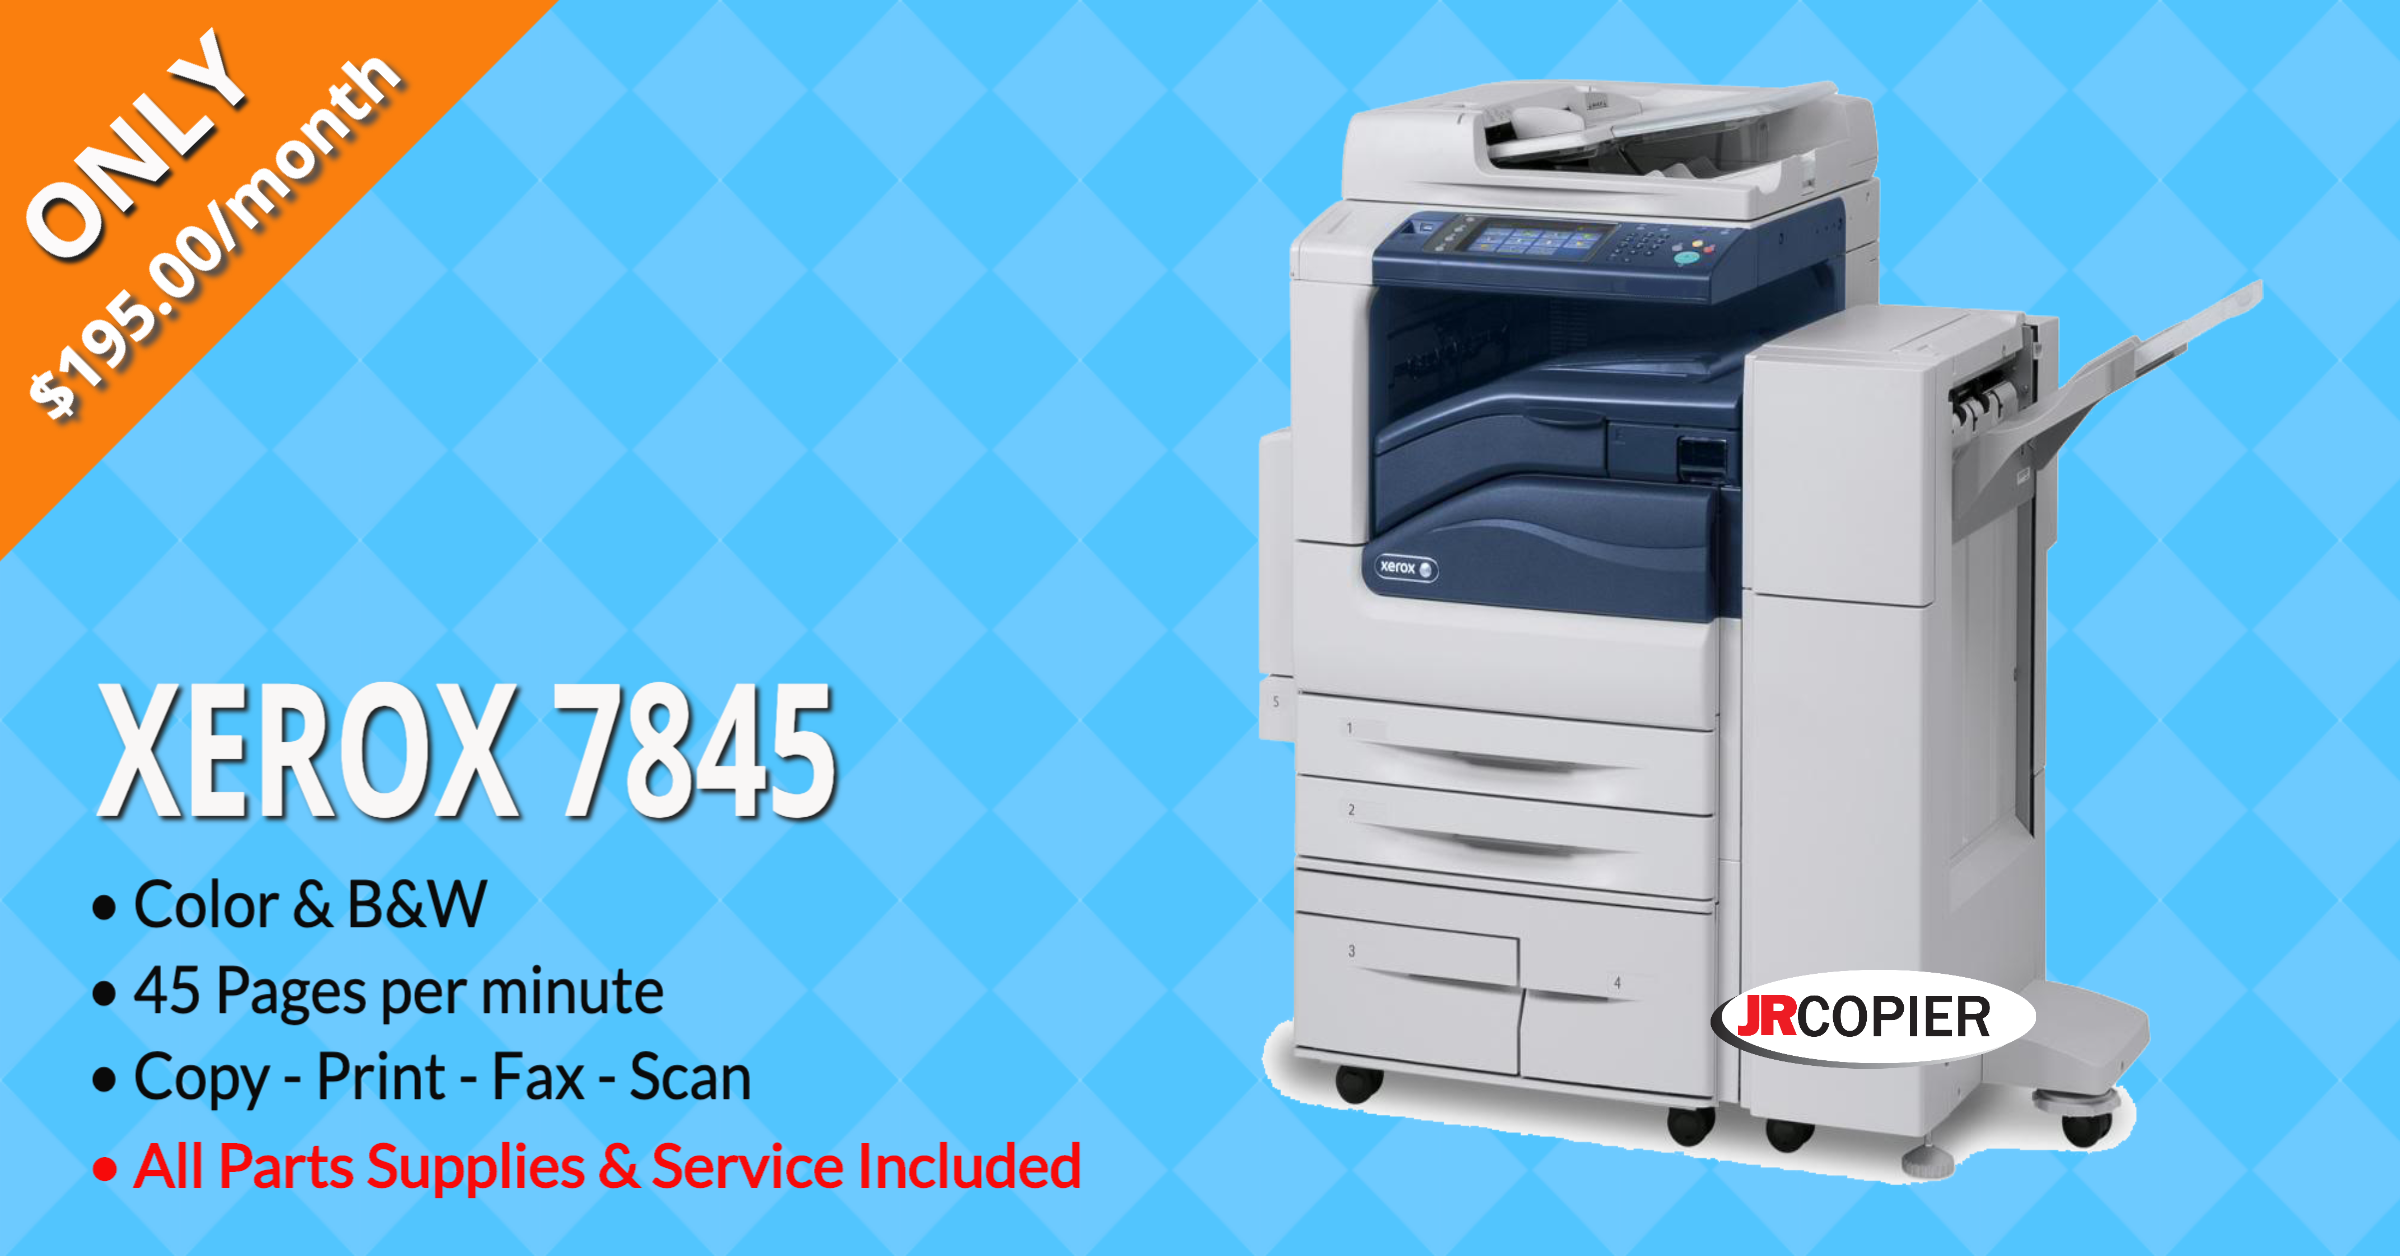 Office Printer Rental 08512, 08528, 08540, 08810, 08816, 08824, 08831, 08852, 08902